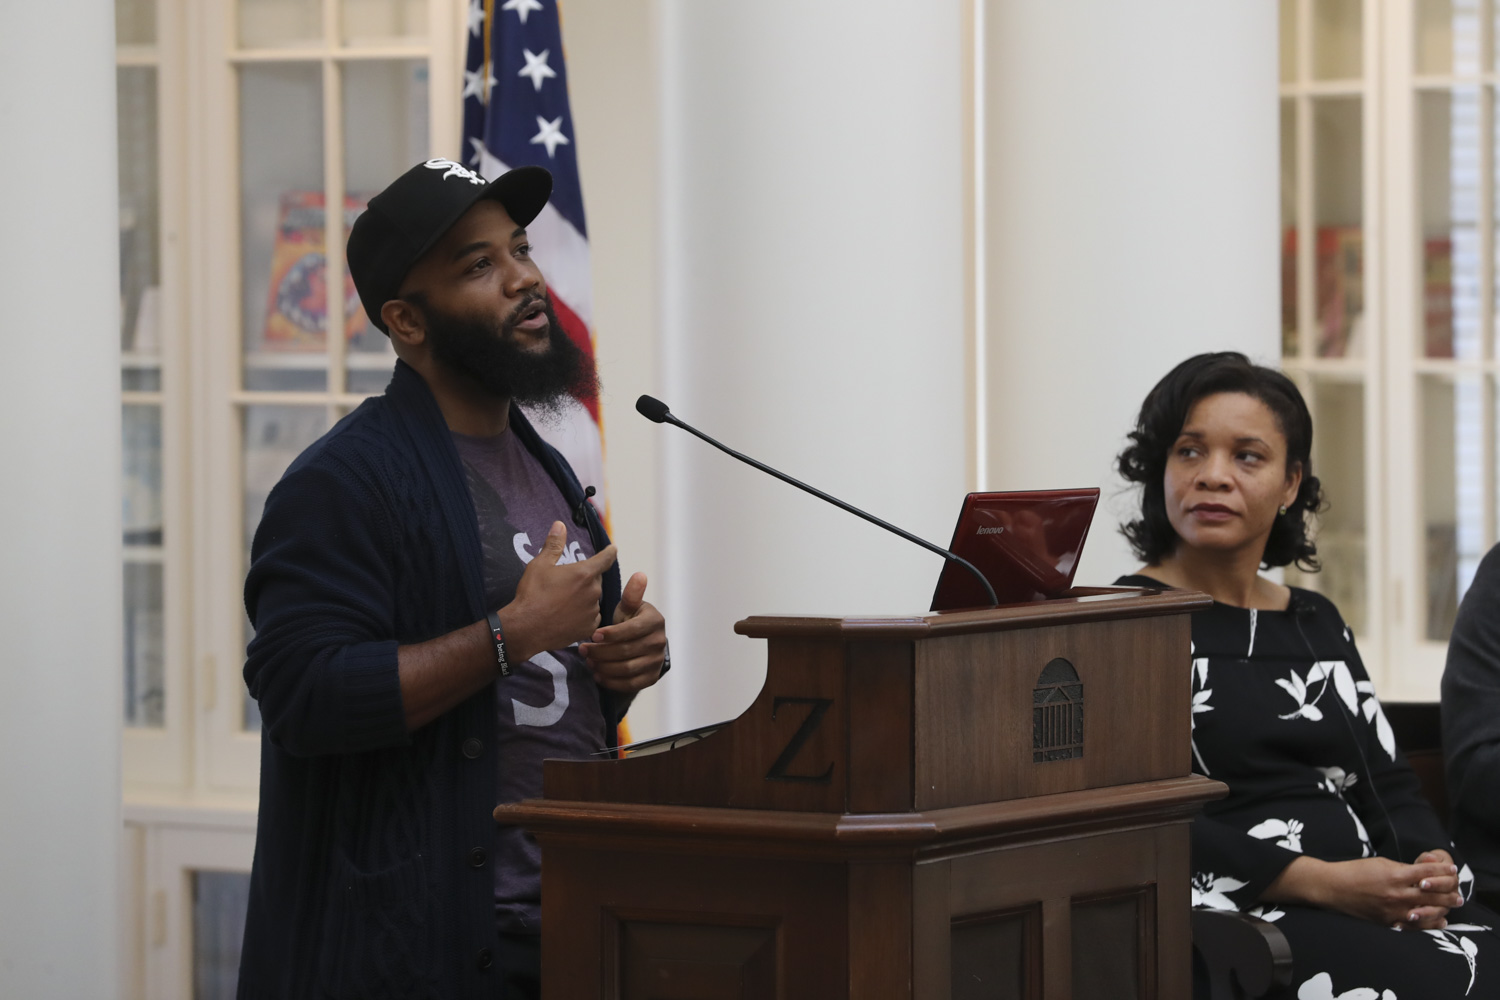 A.D. Carson, assistant professor of hip-hop, discusses hip-hop music in culture as moderator Talitha LeFlouria, Lisa Smith Discovery Associate Professor in African and African-American Studies, listens.